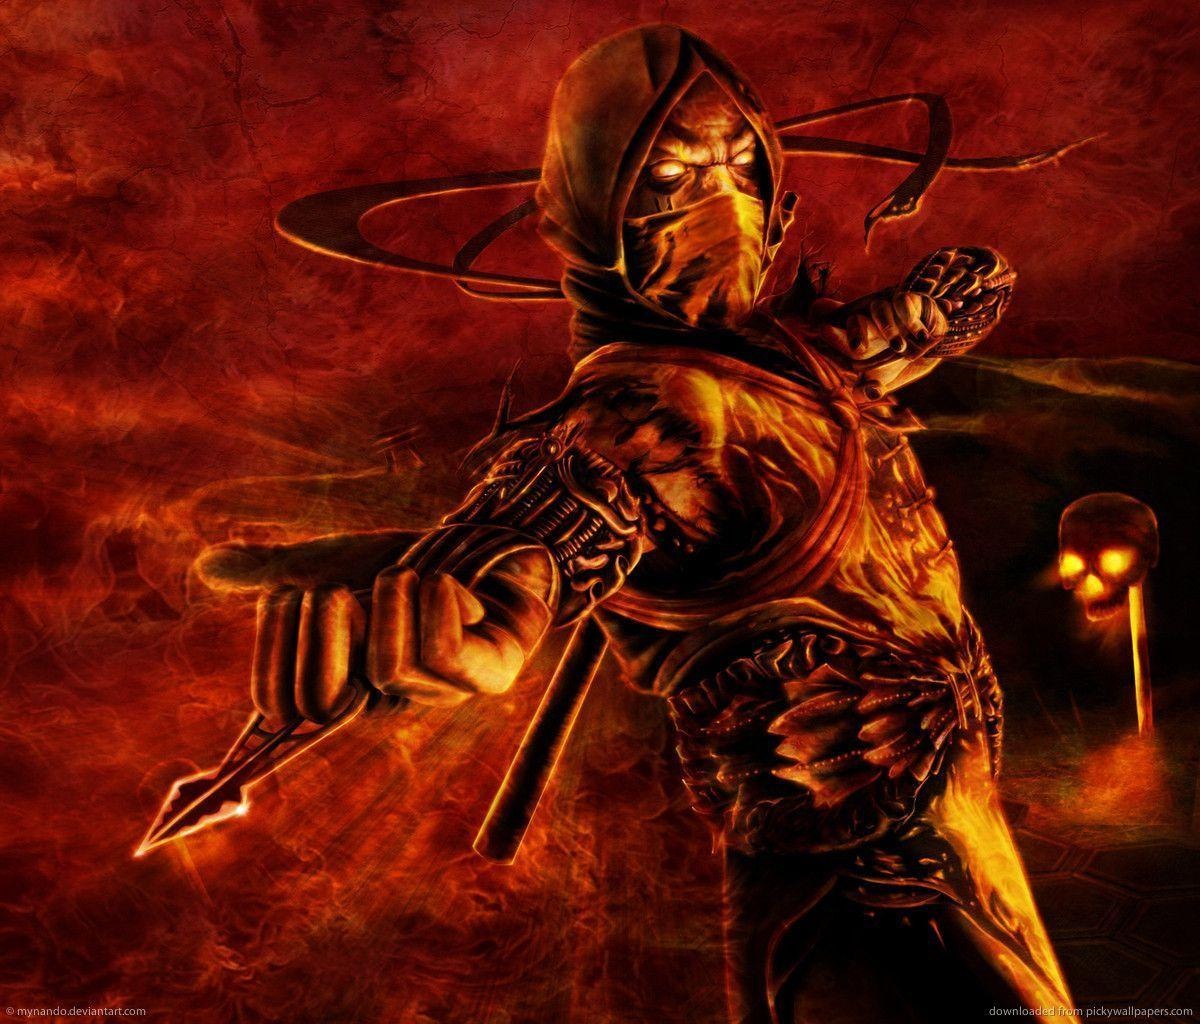 Download Mortal Kombat Scorpion Concept Wallpapers For Samsung